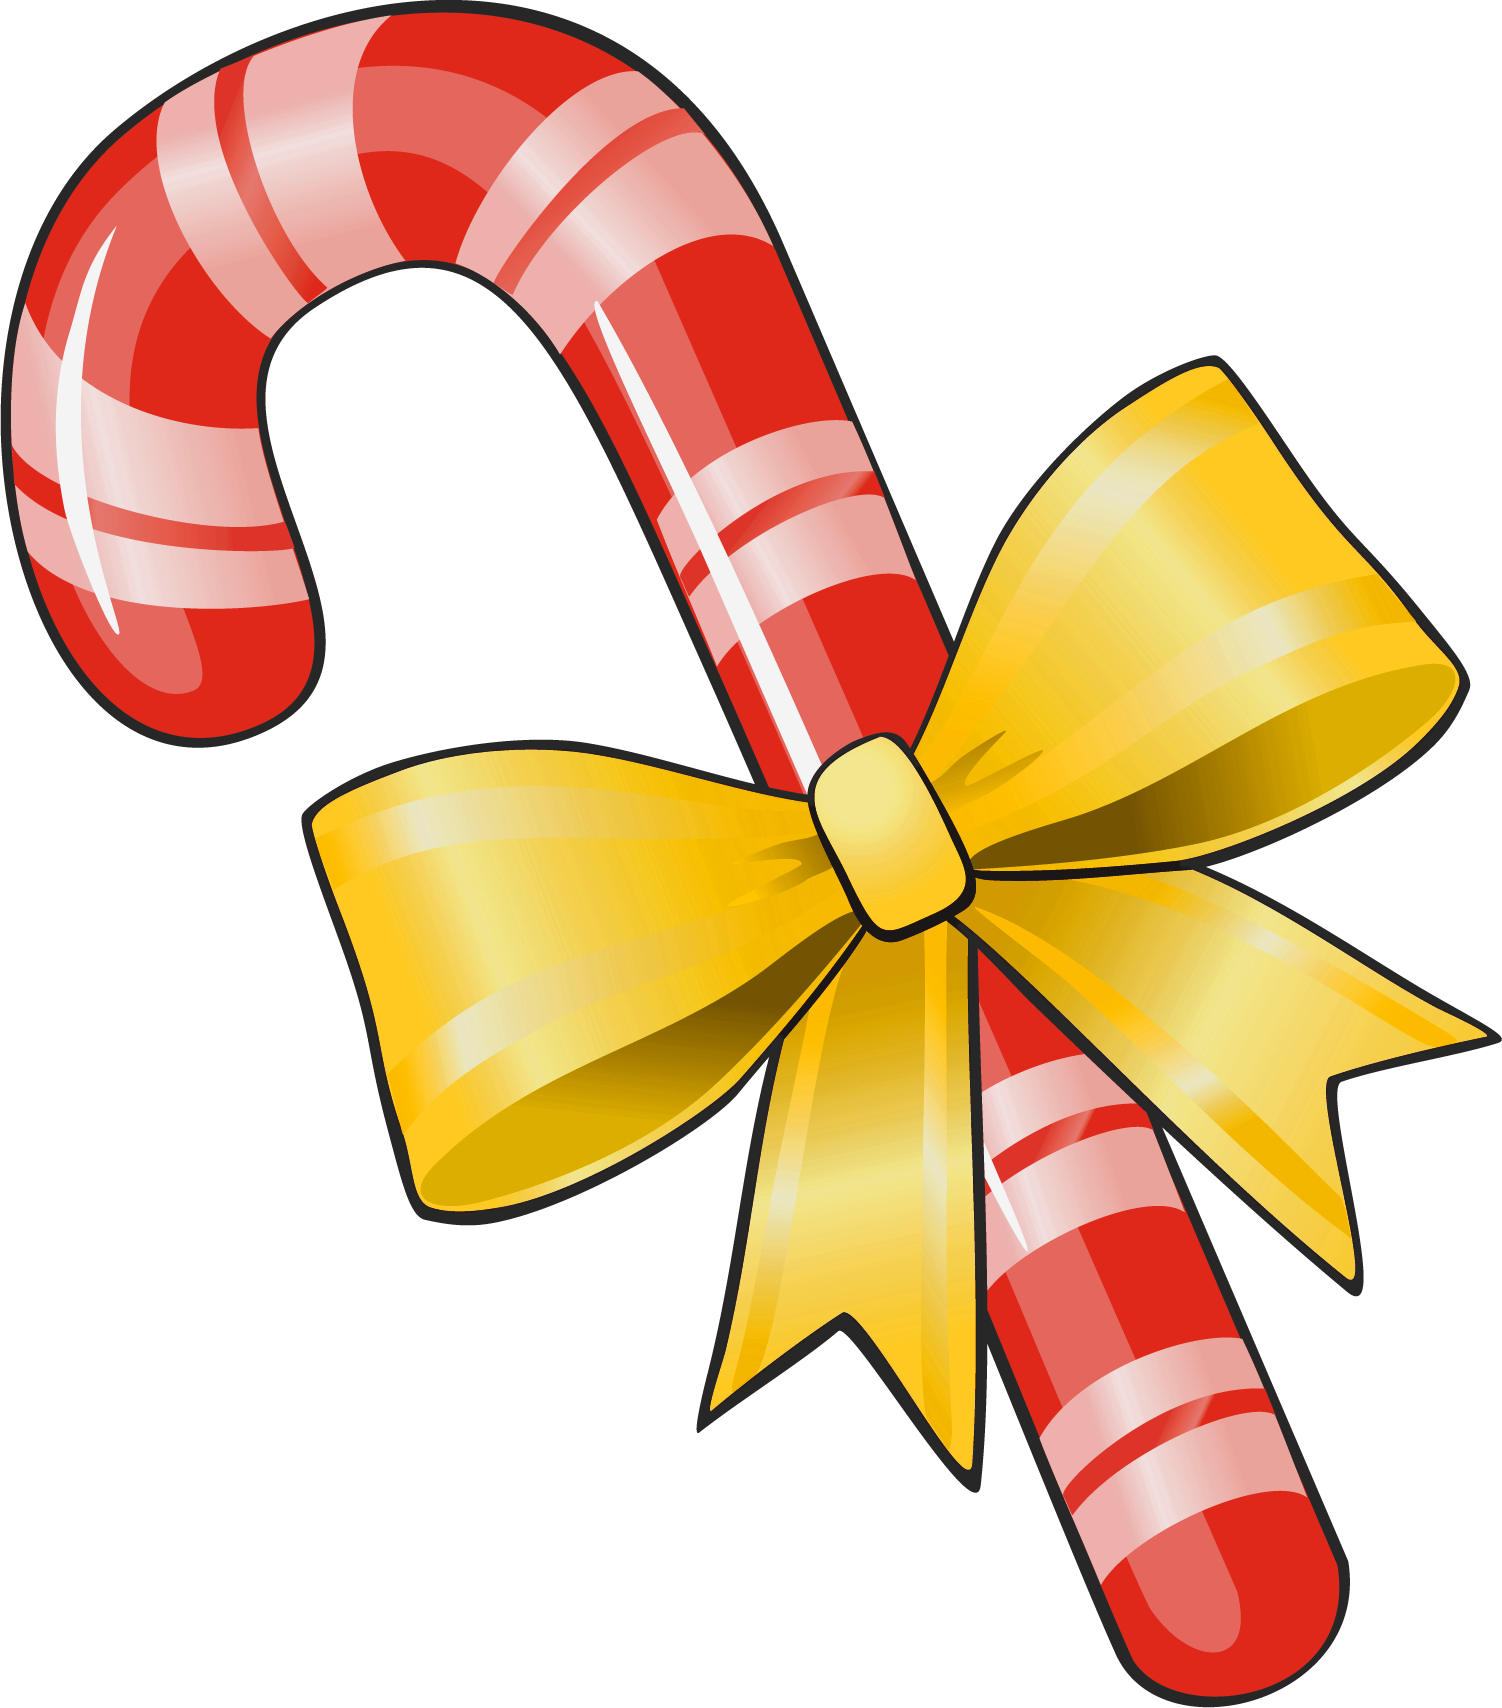 Transparent Christmas Candy Cane with Yellow Bow PNG Clipart.